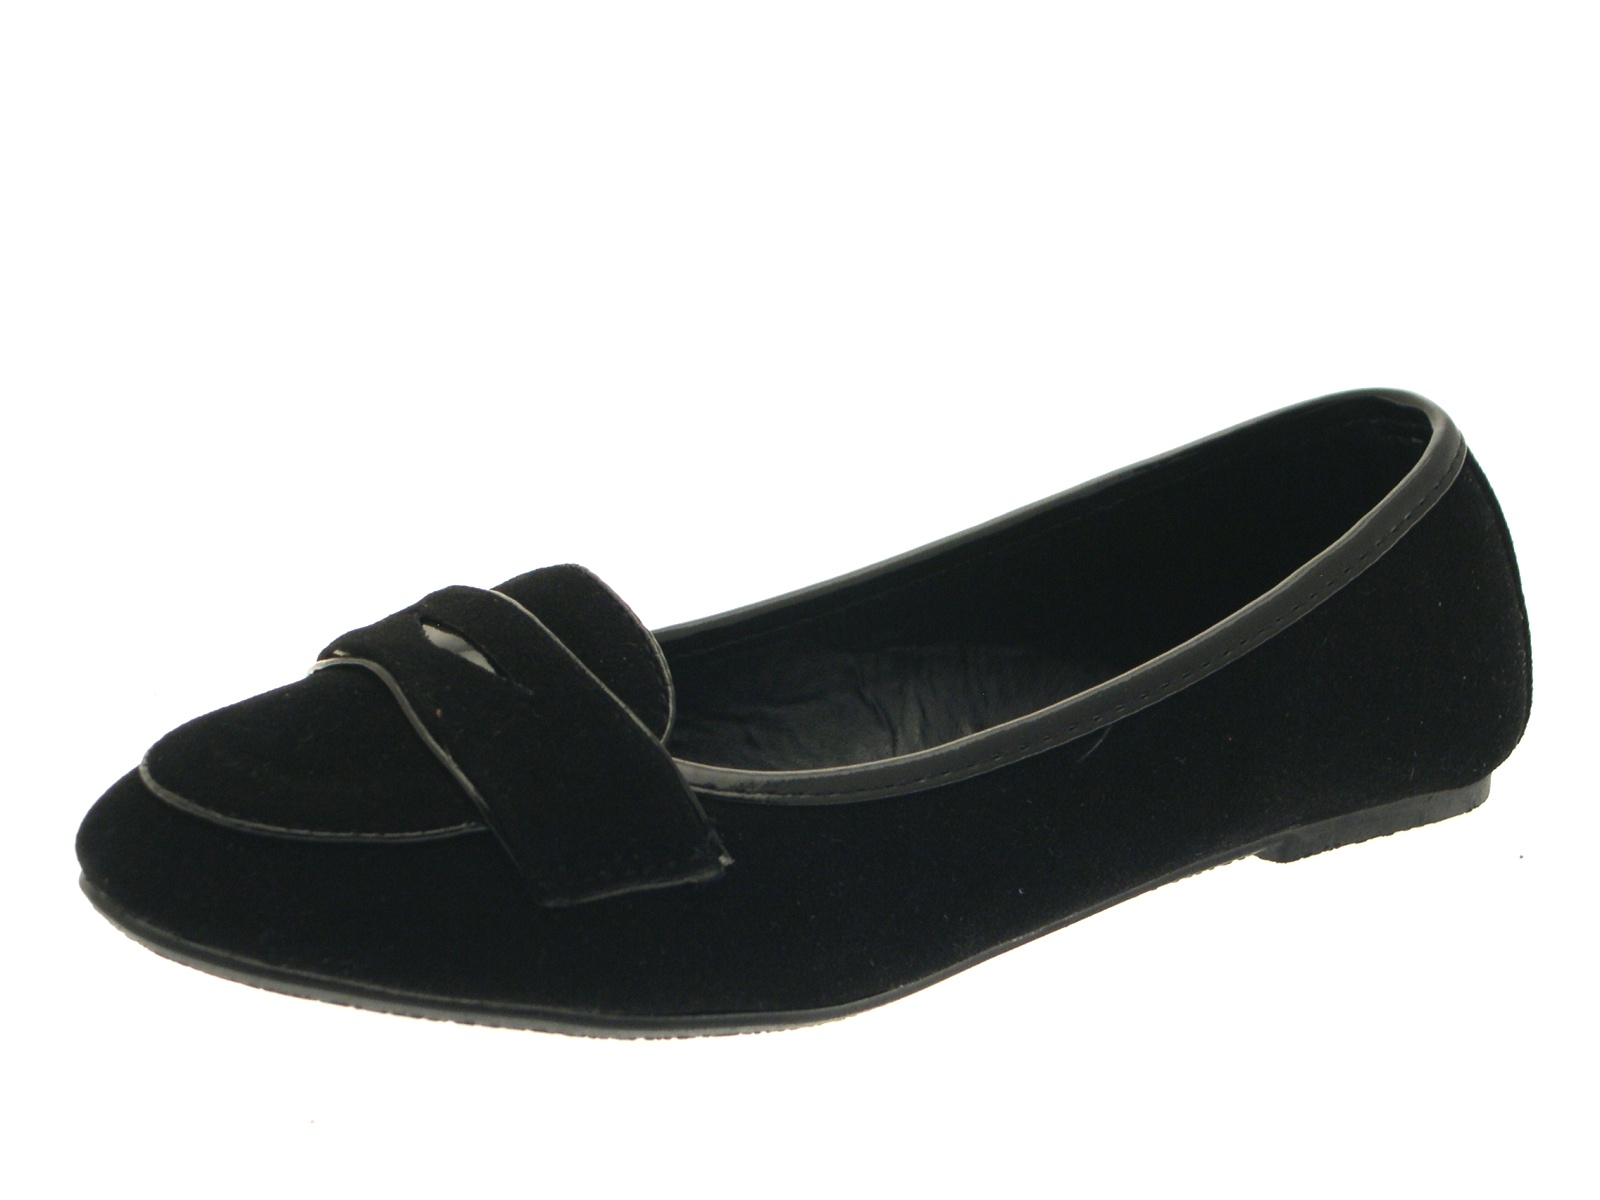 7afaddc7182 Girls Black Slip On Plain Faux Suede Loafer School Shoes Ballerinas Dolly  Pumps